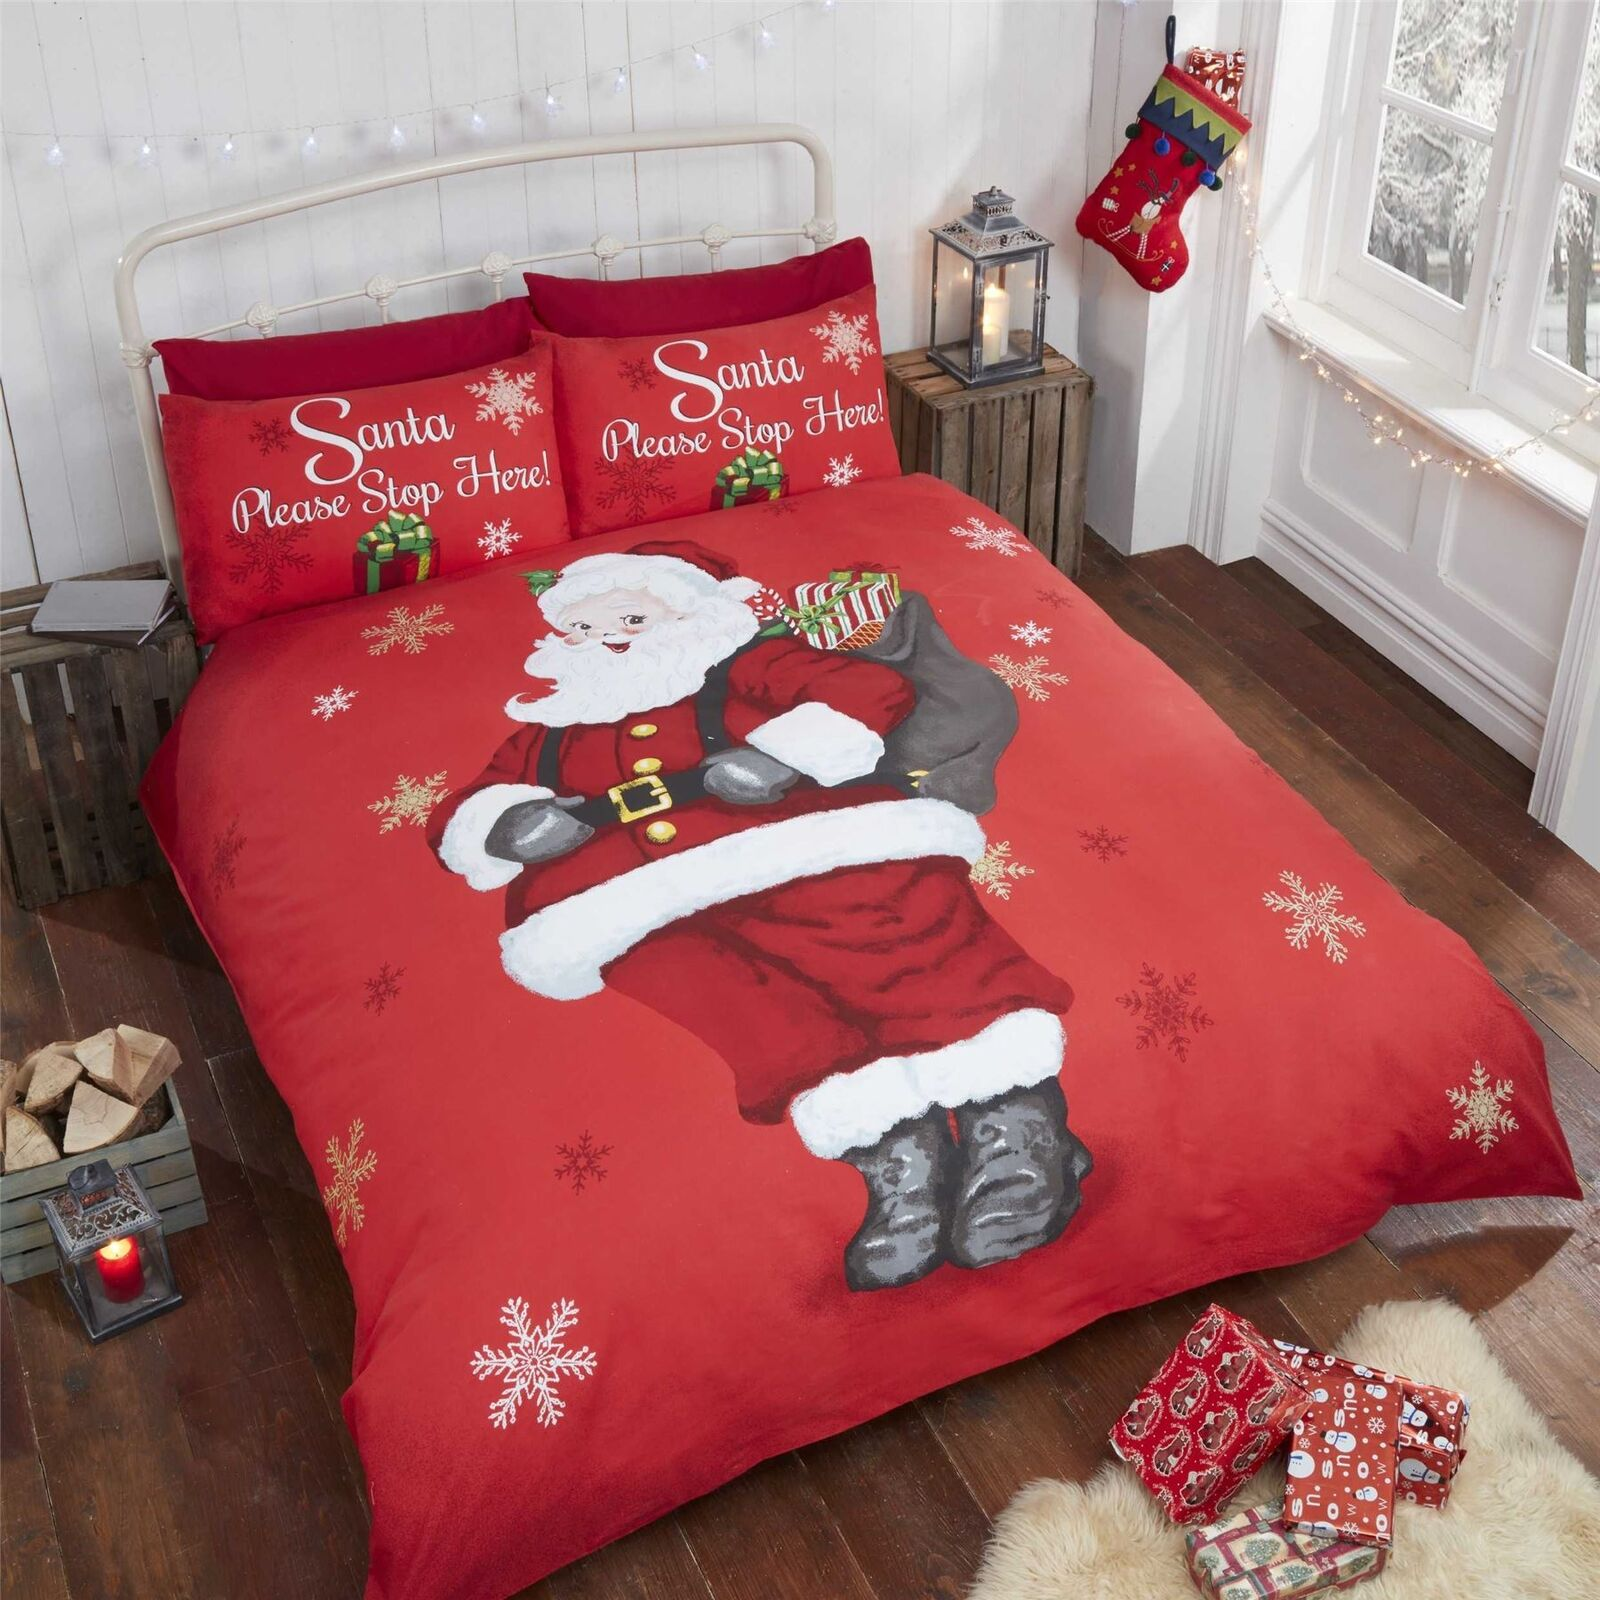 CHRISTMAS SANTA CLAUS PLEASE STOP HERE SNOWFLAKES RED GREY KING SIZE DUVET COVER